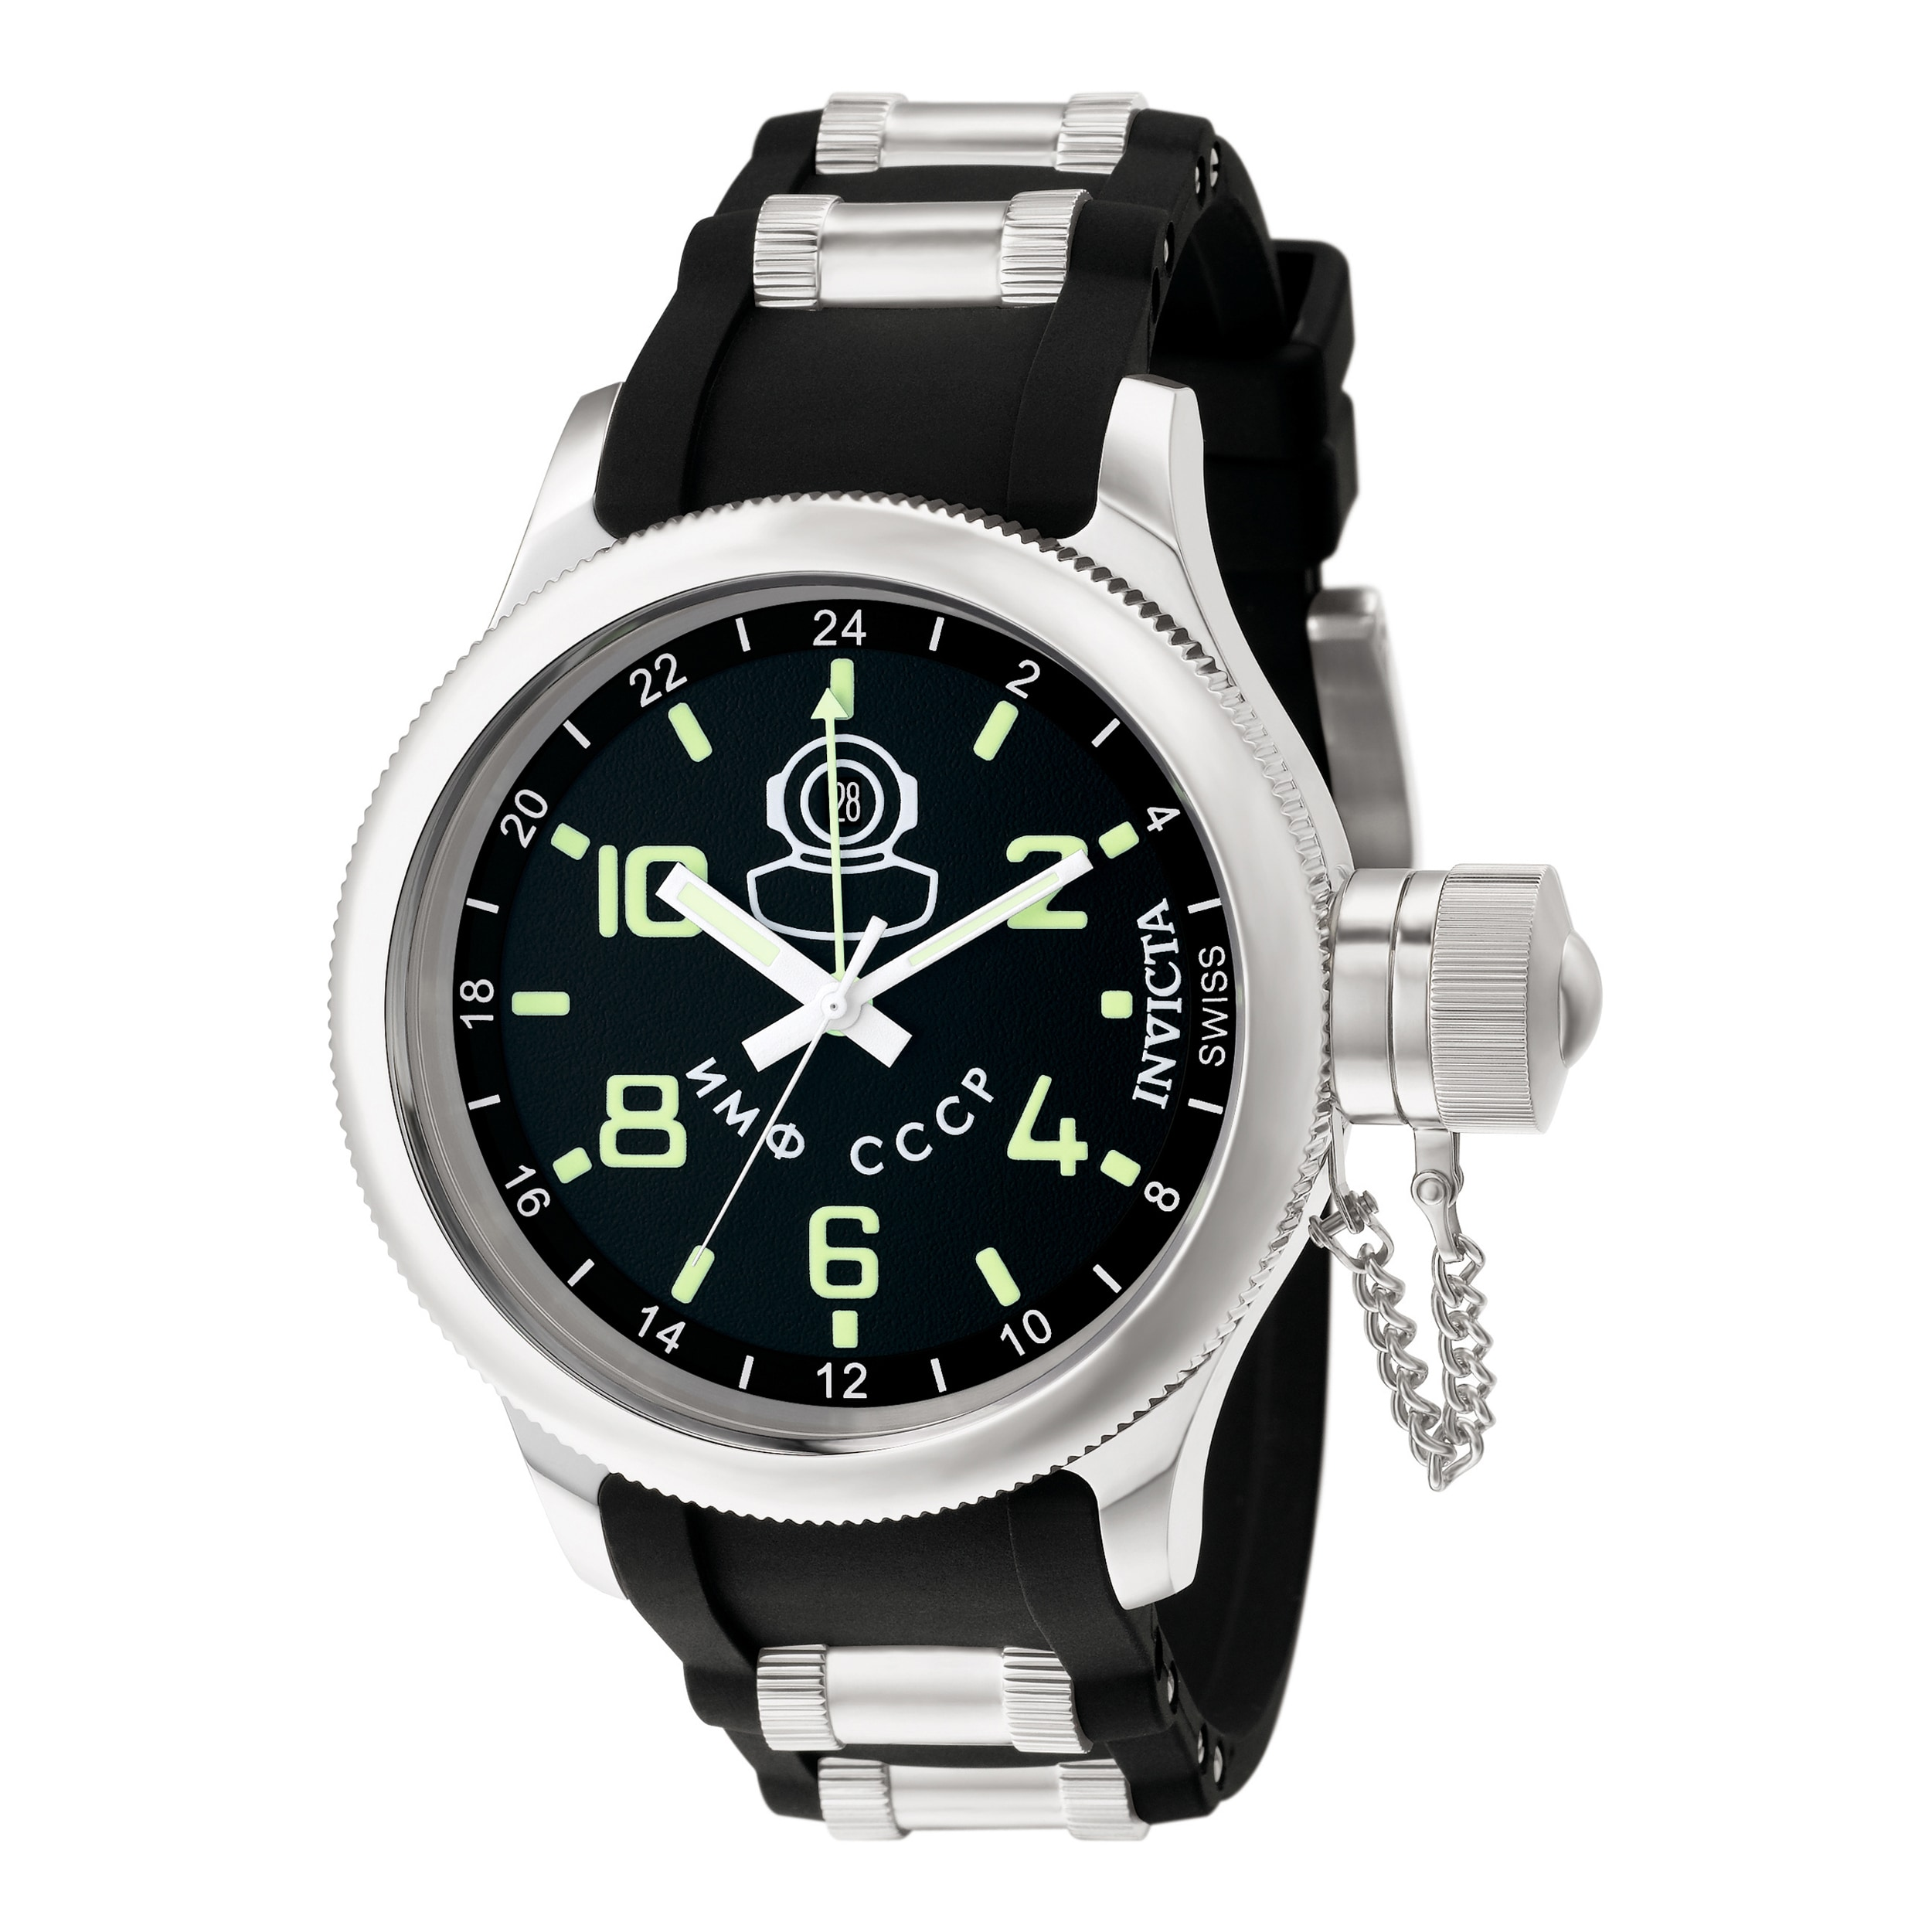 Invicta Men's 7238 Russian Diver Quartz Gmt Black Dial Wa...